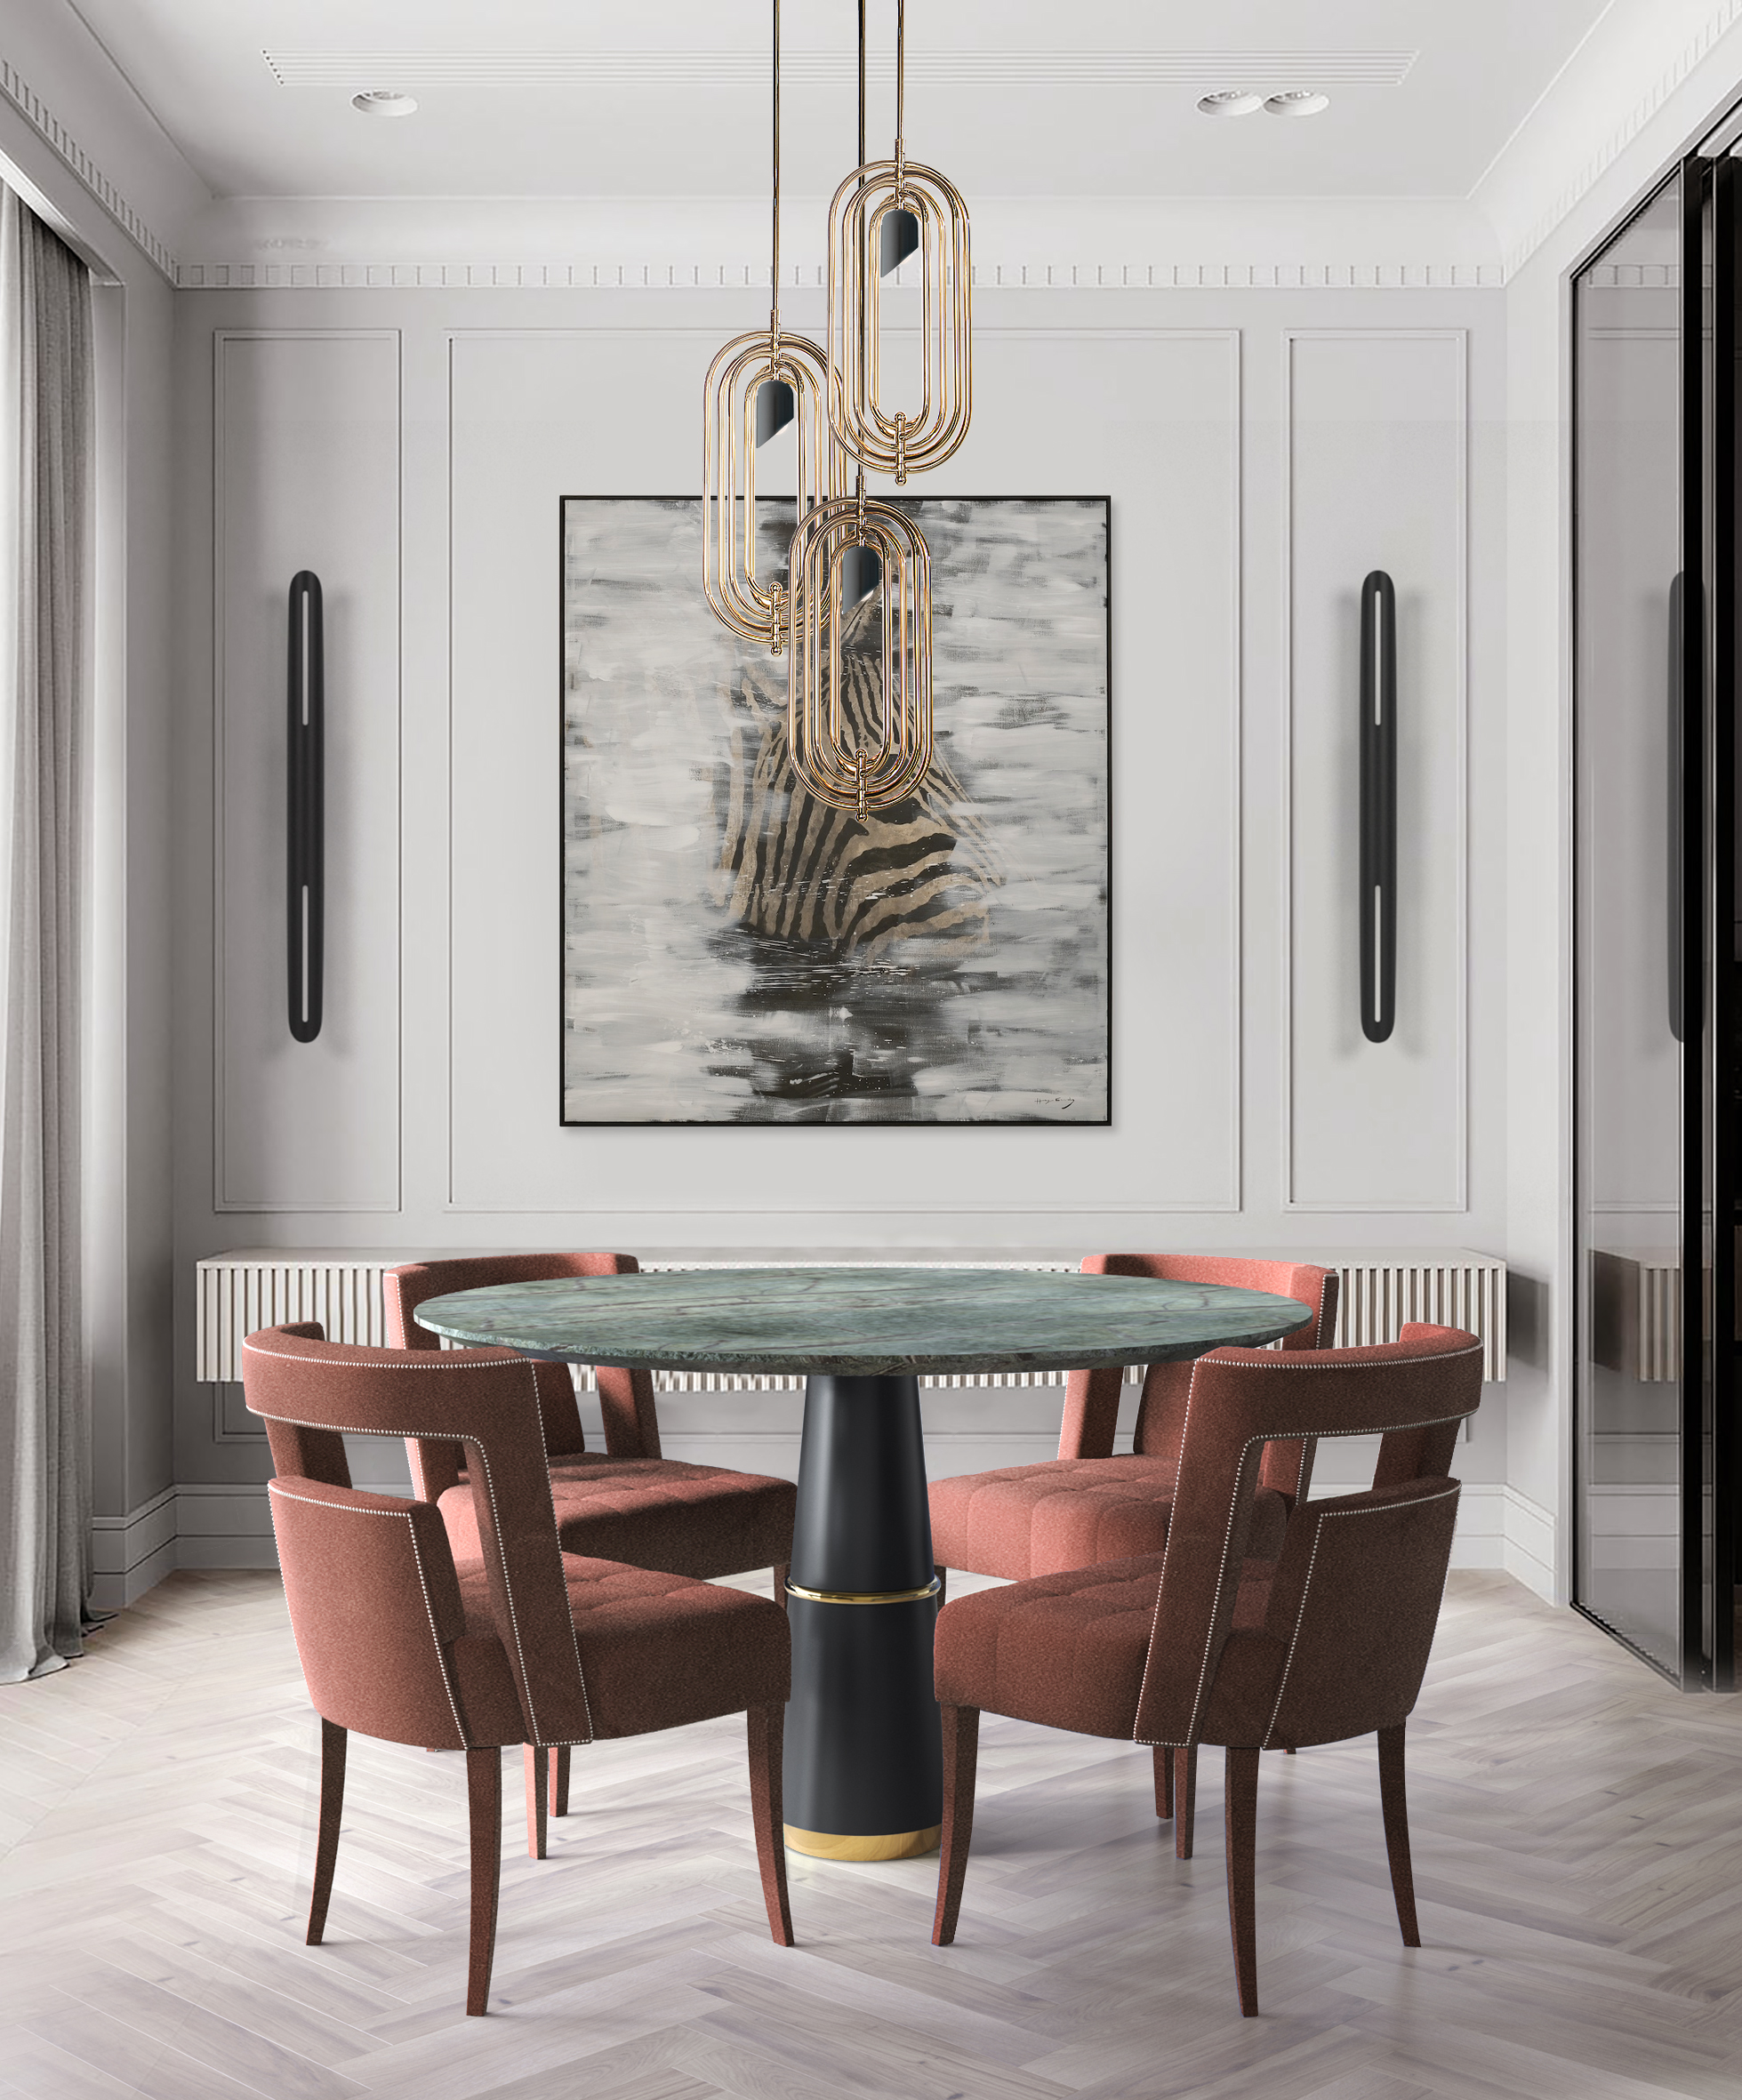 7 Dining Rooms That Make The Most Out of Limited Space Due to the Lighting Fixture! dining rooms 7 Dining Rooms That Make The Most Out of Limited Space Due to the Lighting Fixture! 1 3